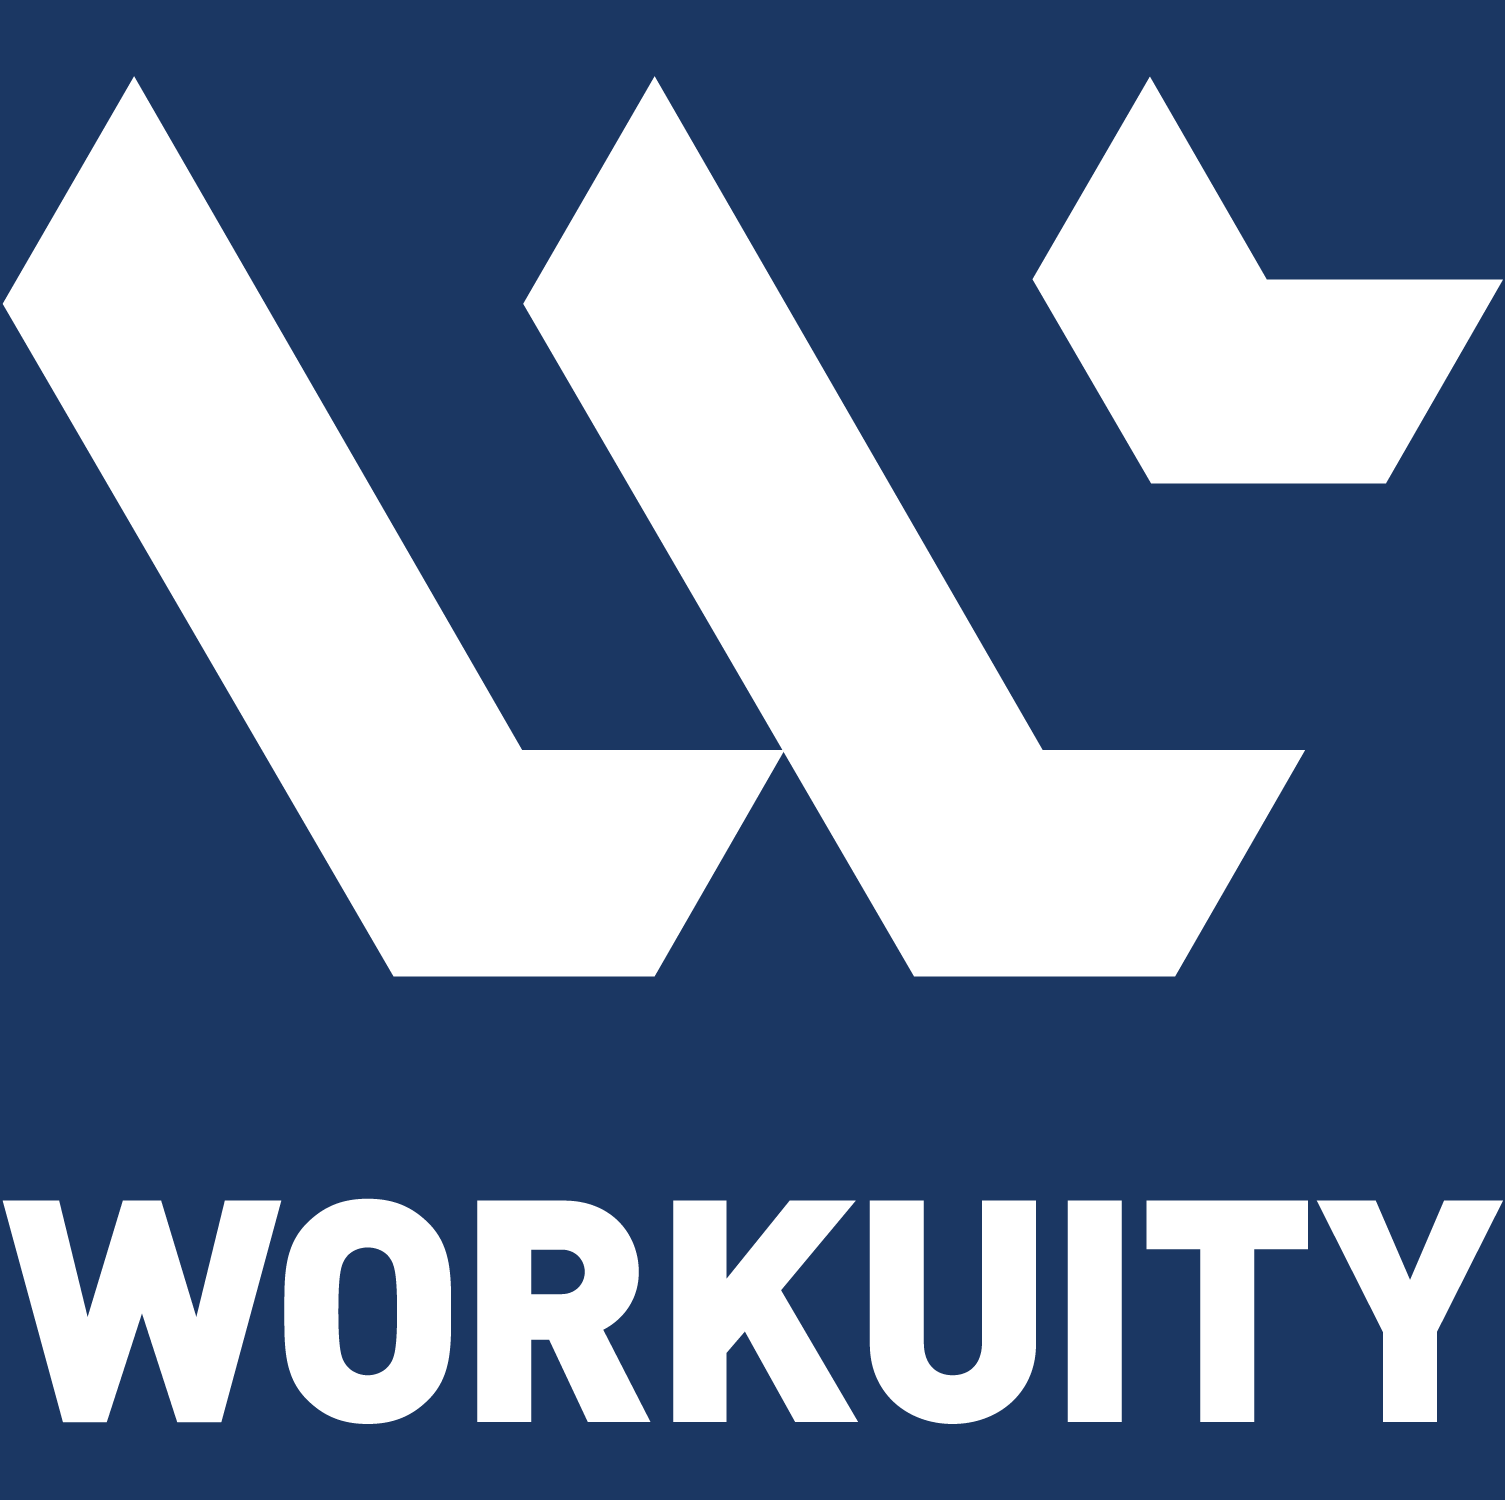 Workuity